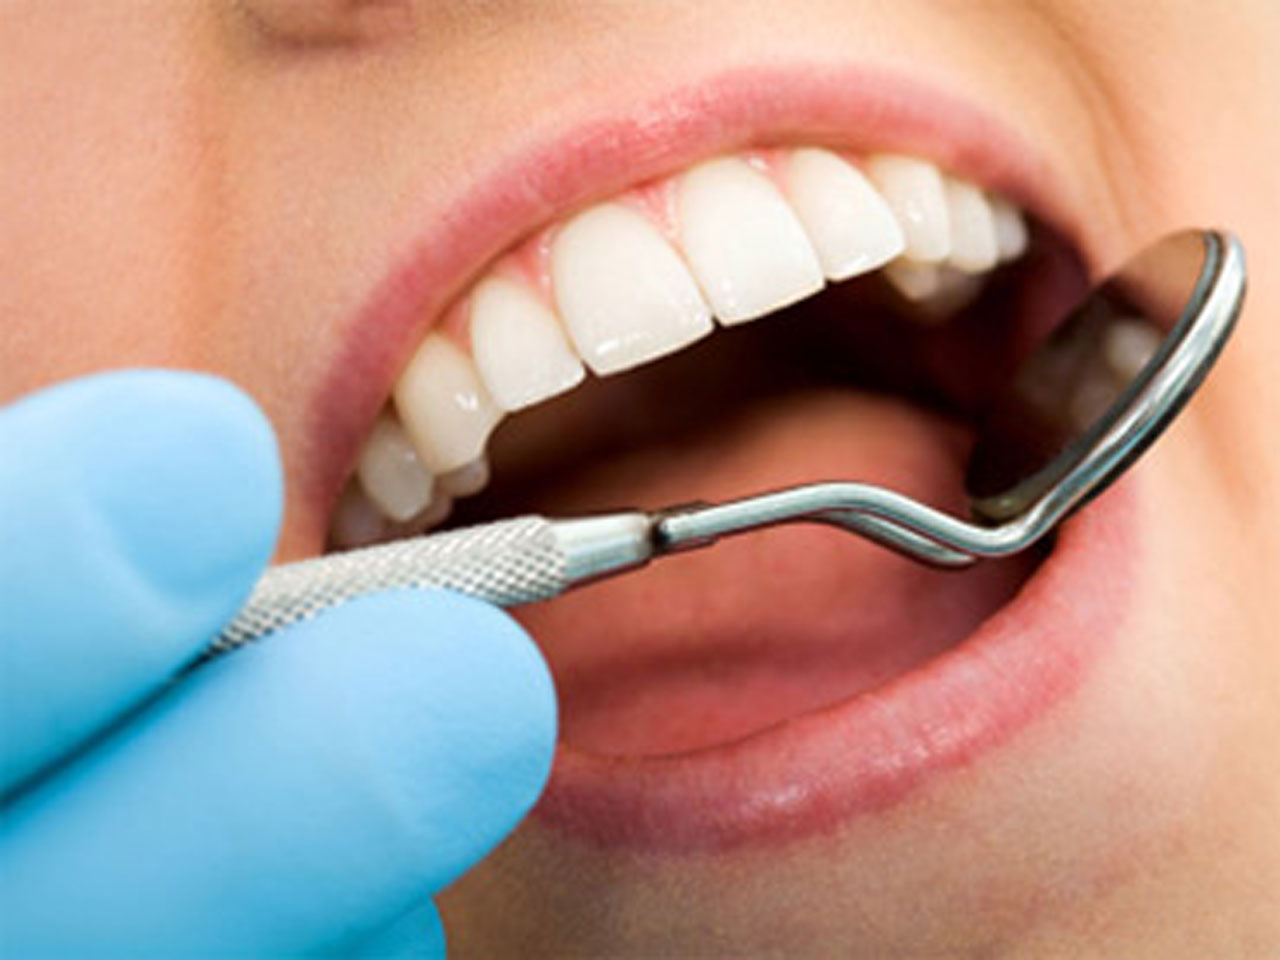 Dental cavities may protect against oral, throat cancers - CBS News